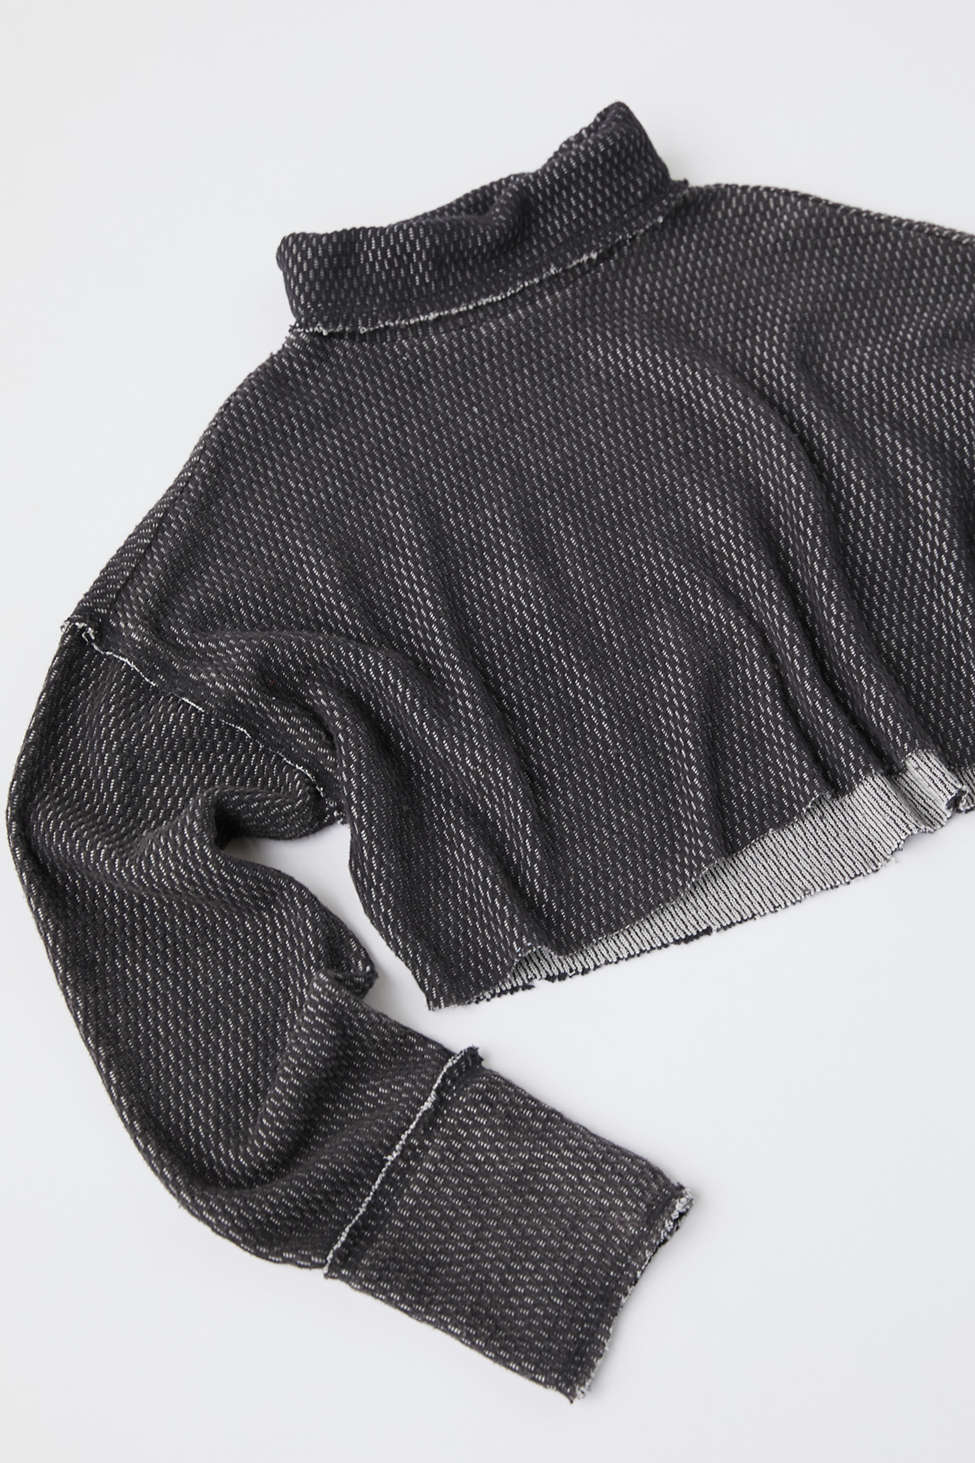 Out From Under Camino Long Sleeve Top | Urban Outfitters